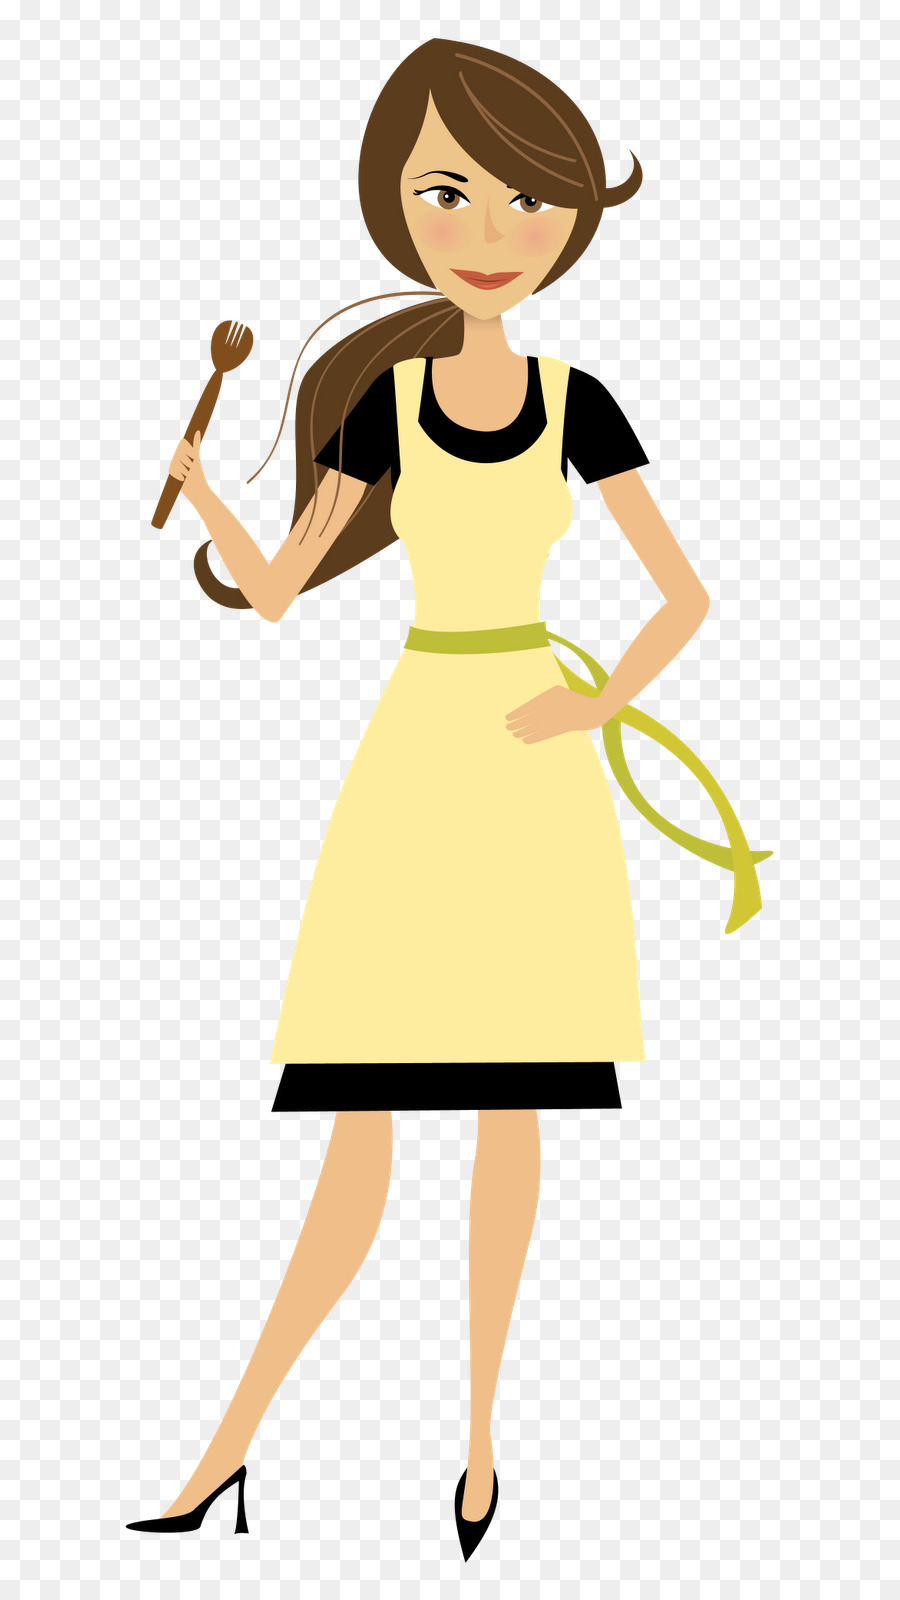 mother woman clip art mom cooking cliparts png download 883 1600 rh kisspng com Baby Clip Art Baby Clip Art